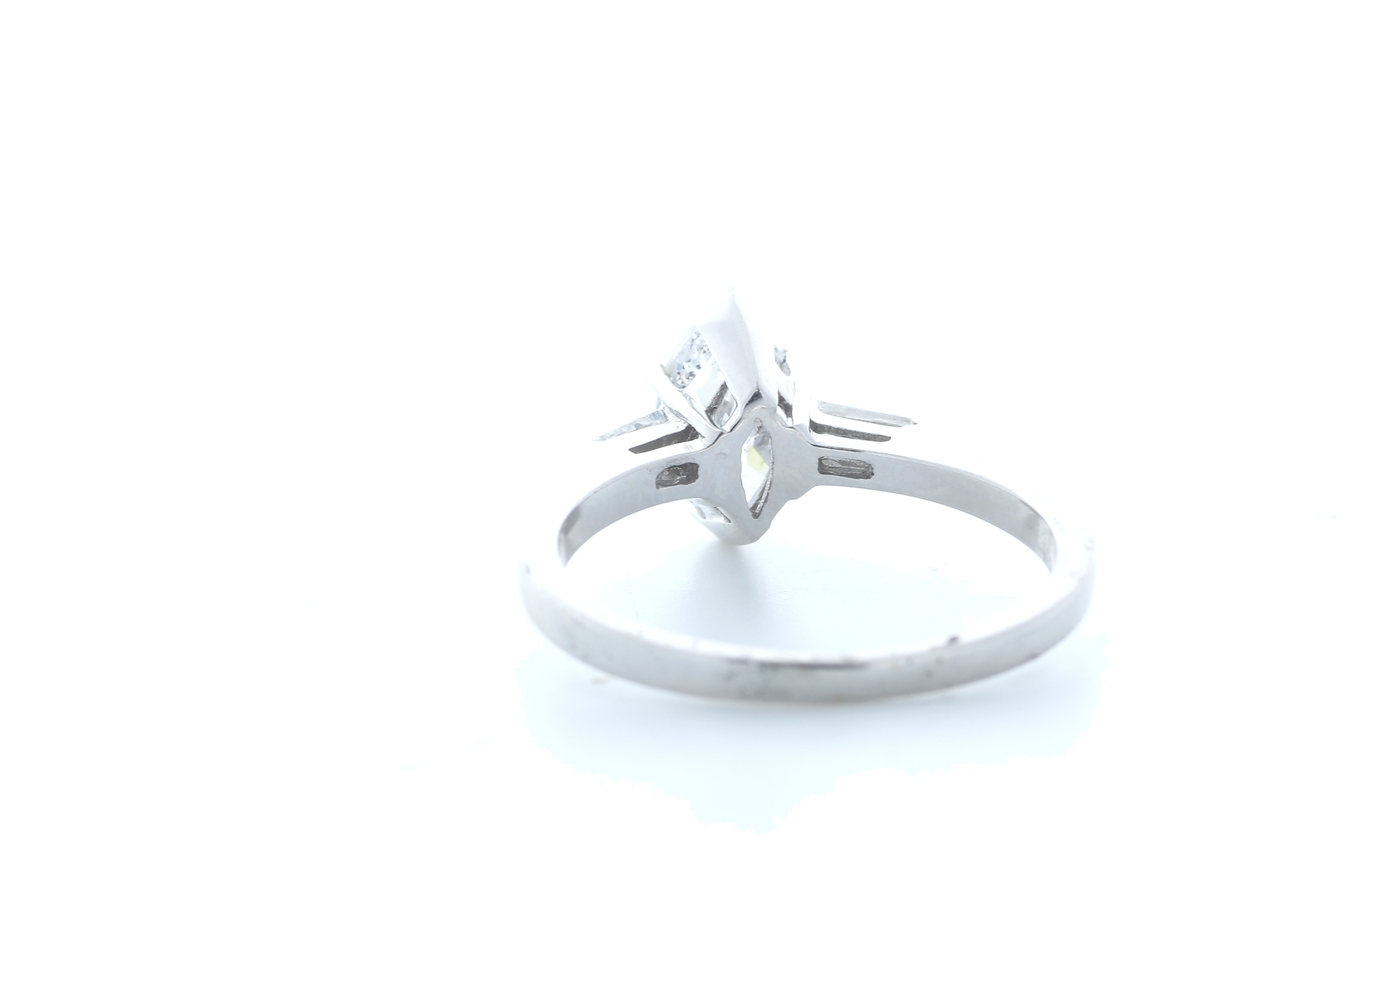 18ct White Gold Marquise Diamond With Stone Set Shoulders 1.22 Carats - Image 3 of 5